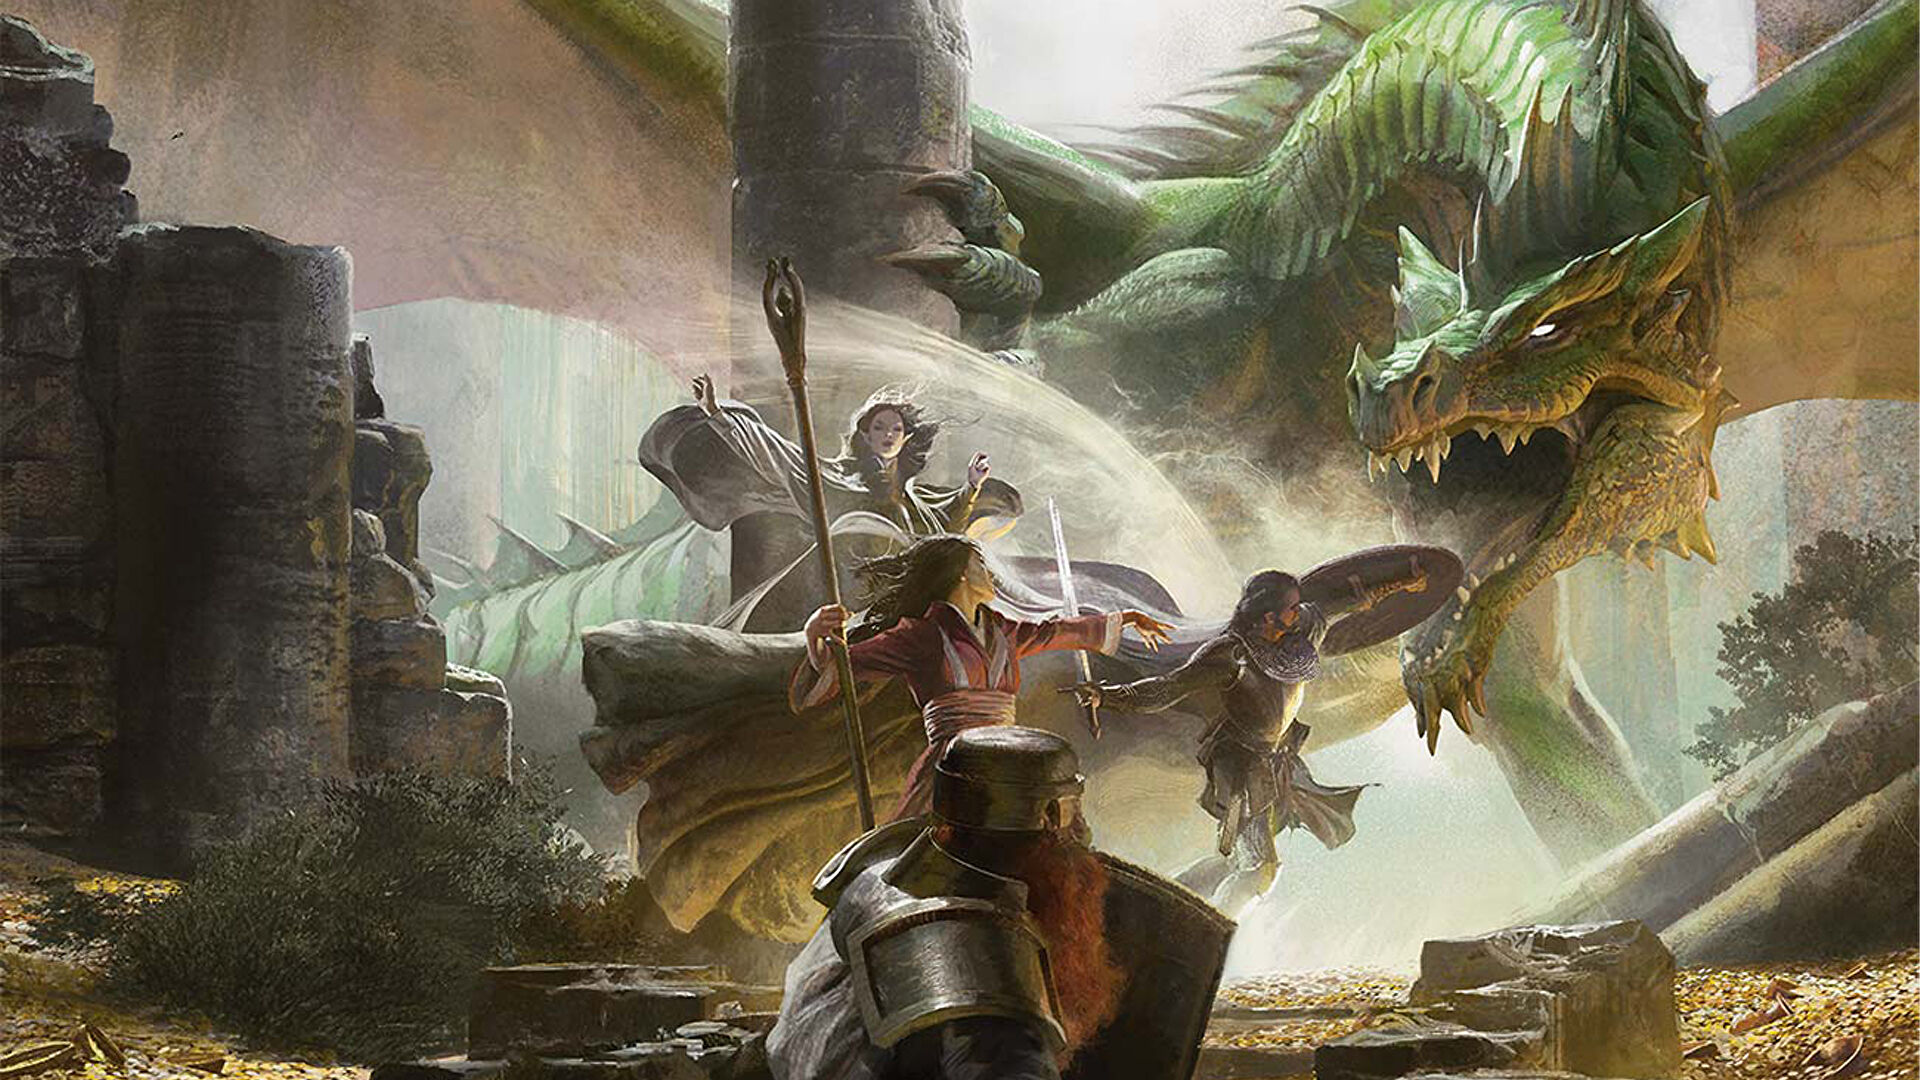 Play Dungeons Dragons 5e Starter Set Adventure Lost Mines Of Phandelver For Free On D D Beyond Dicebreaker